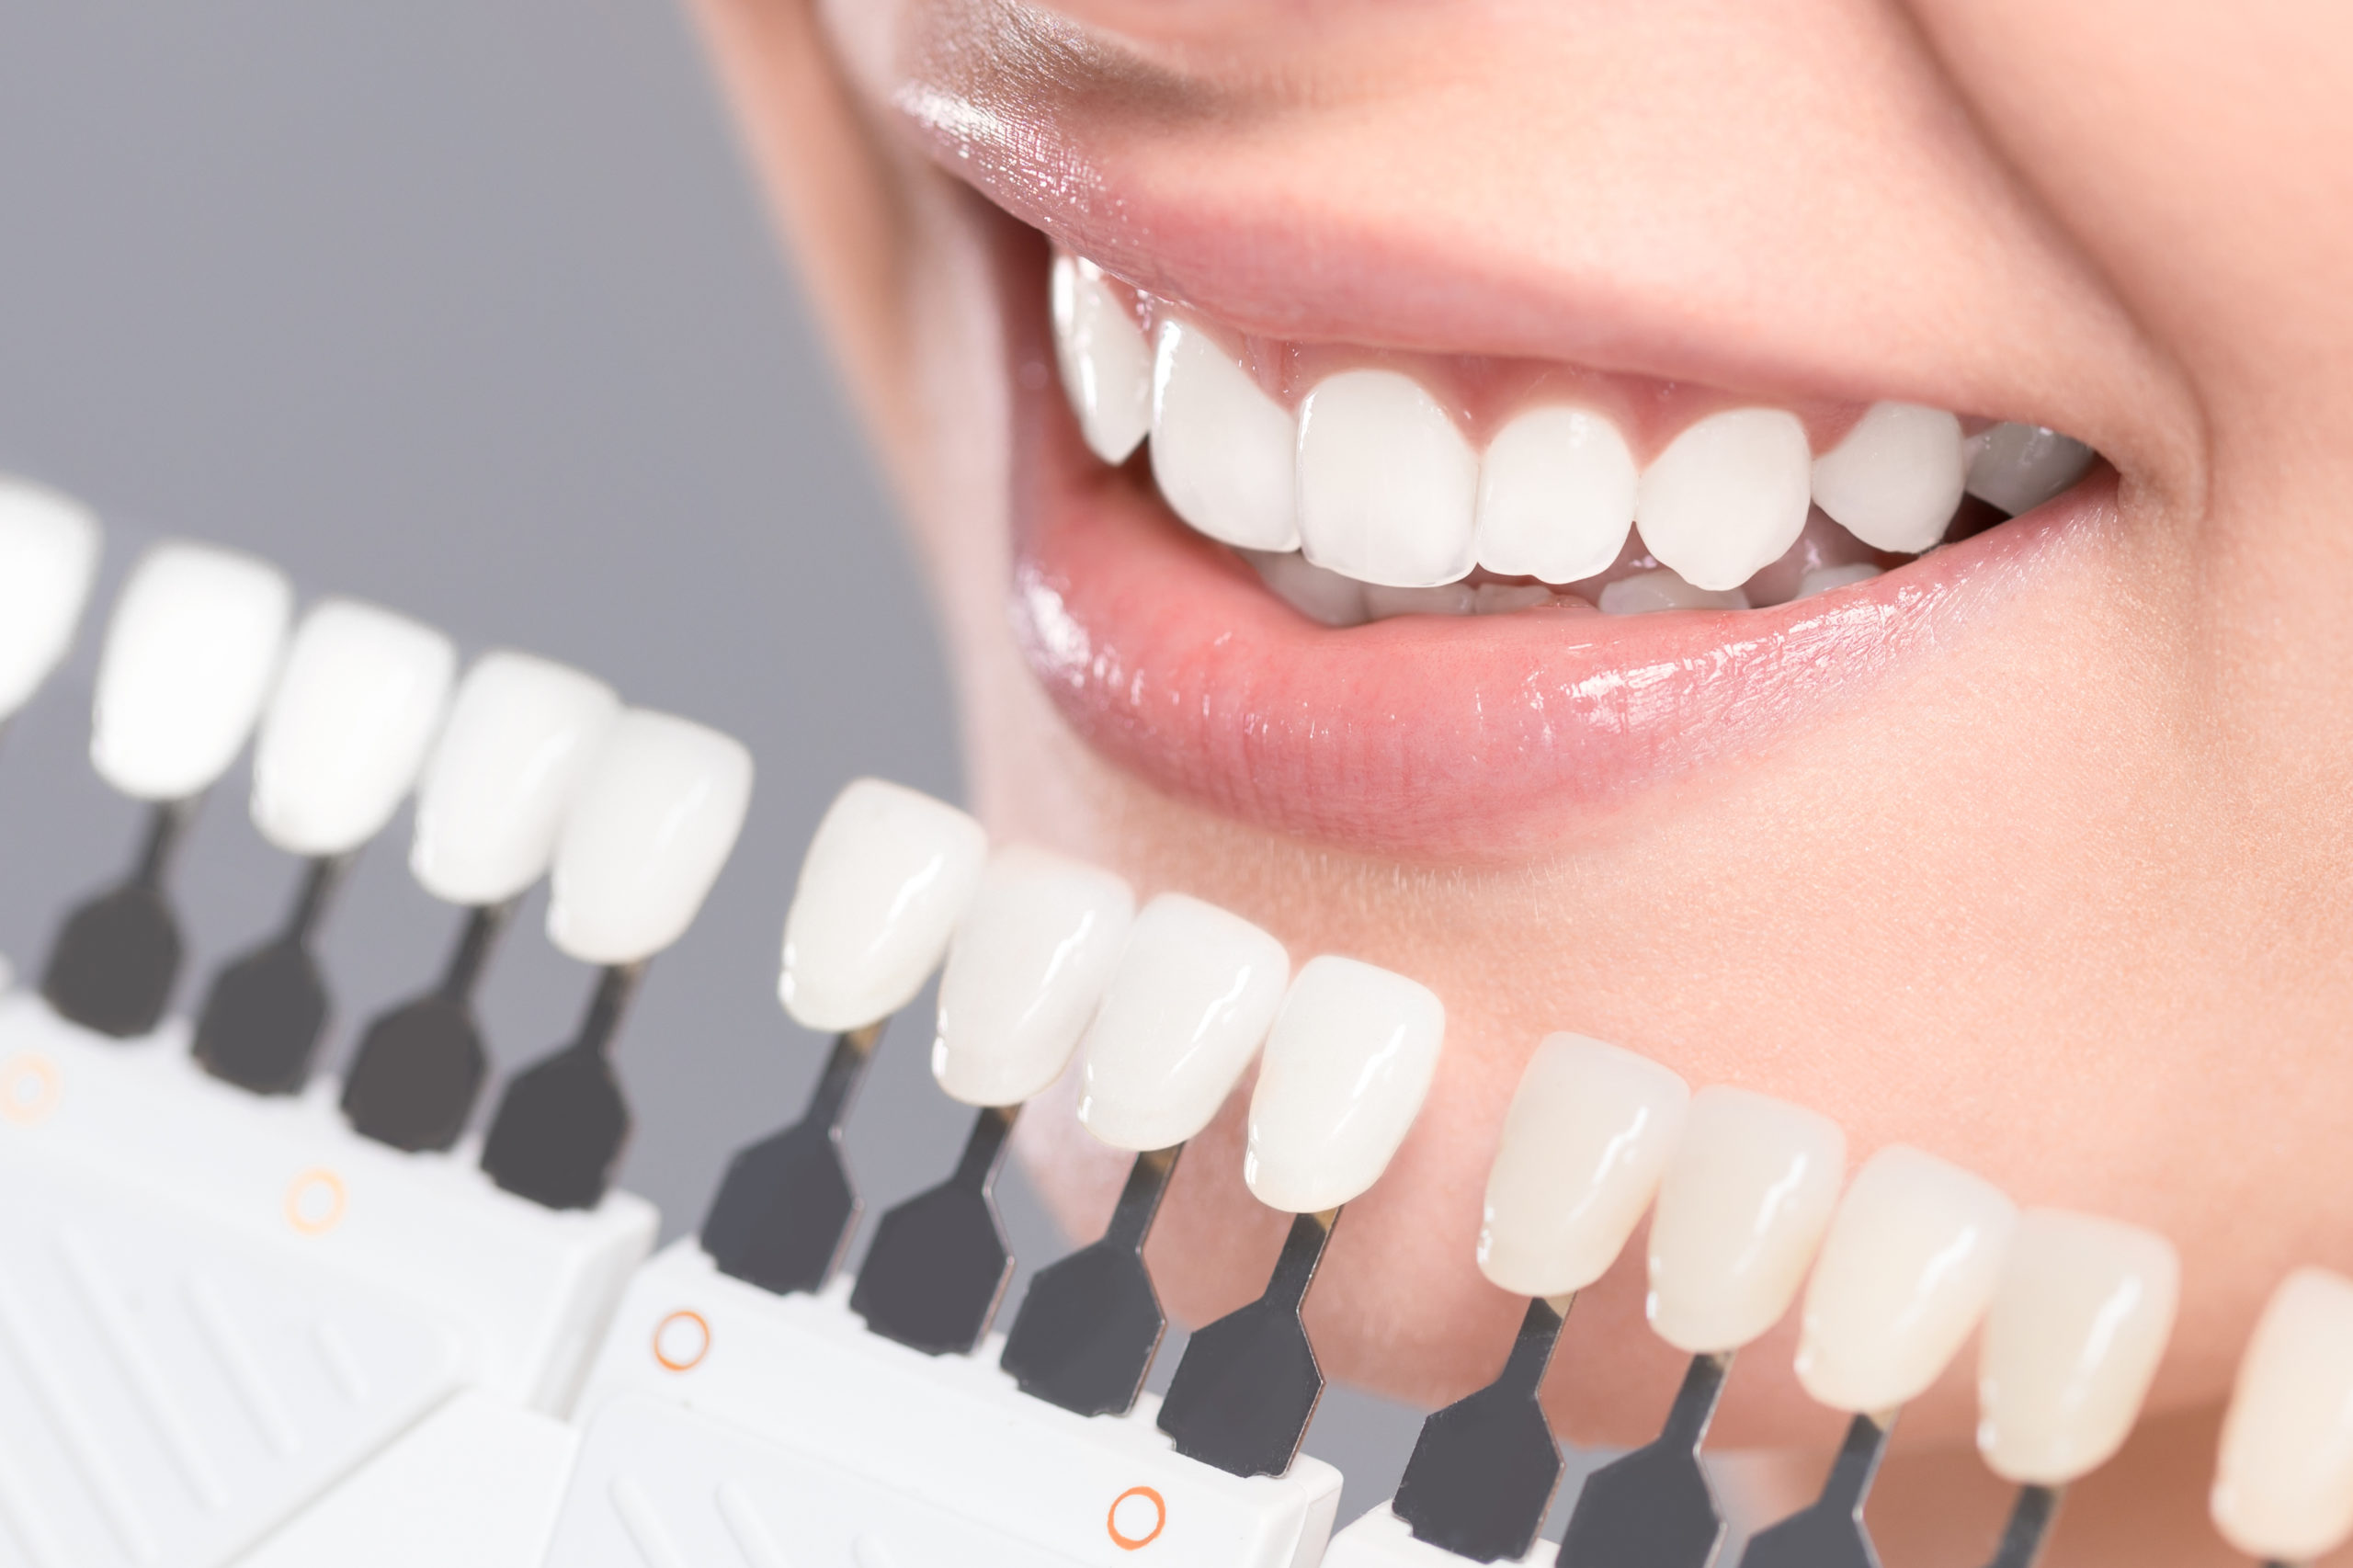 Silver Fillings, crowns, dental services